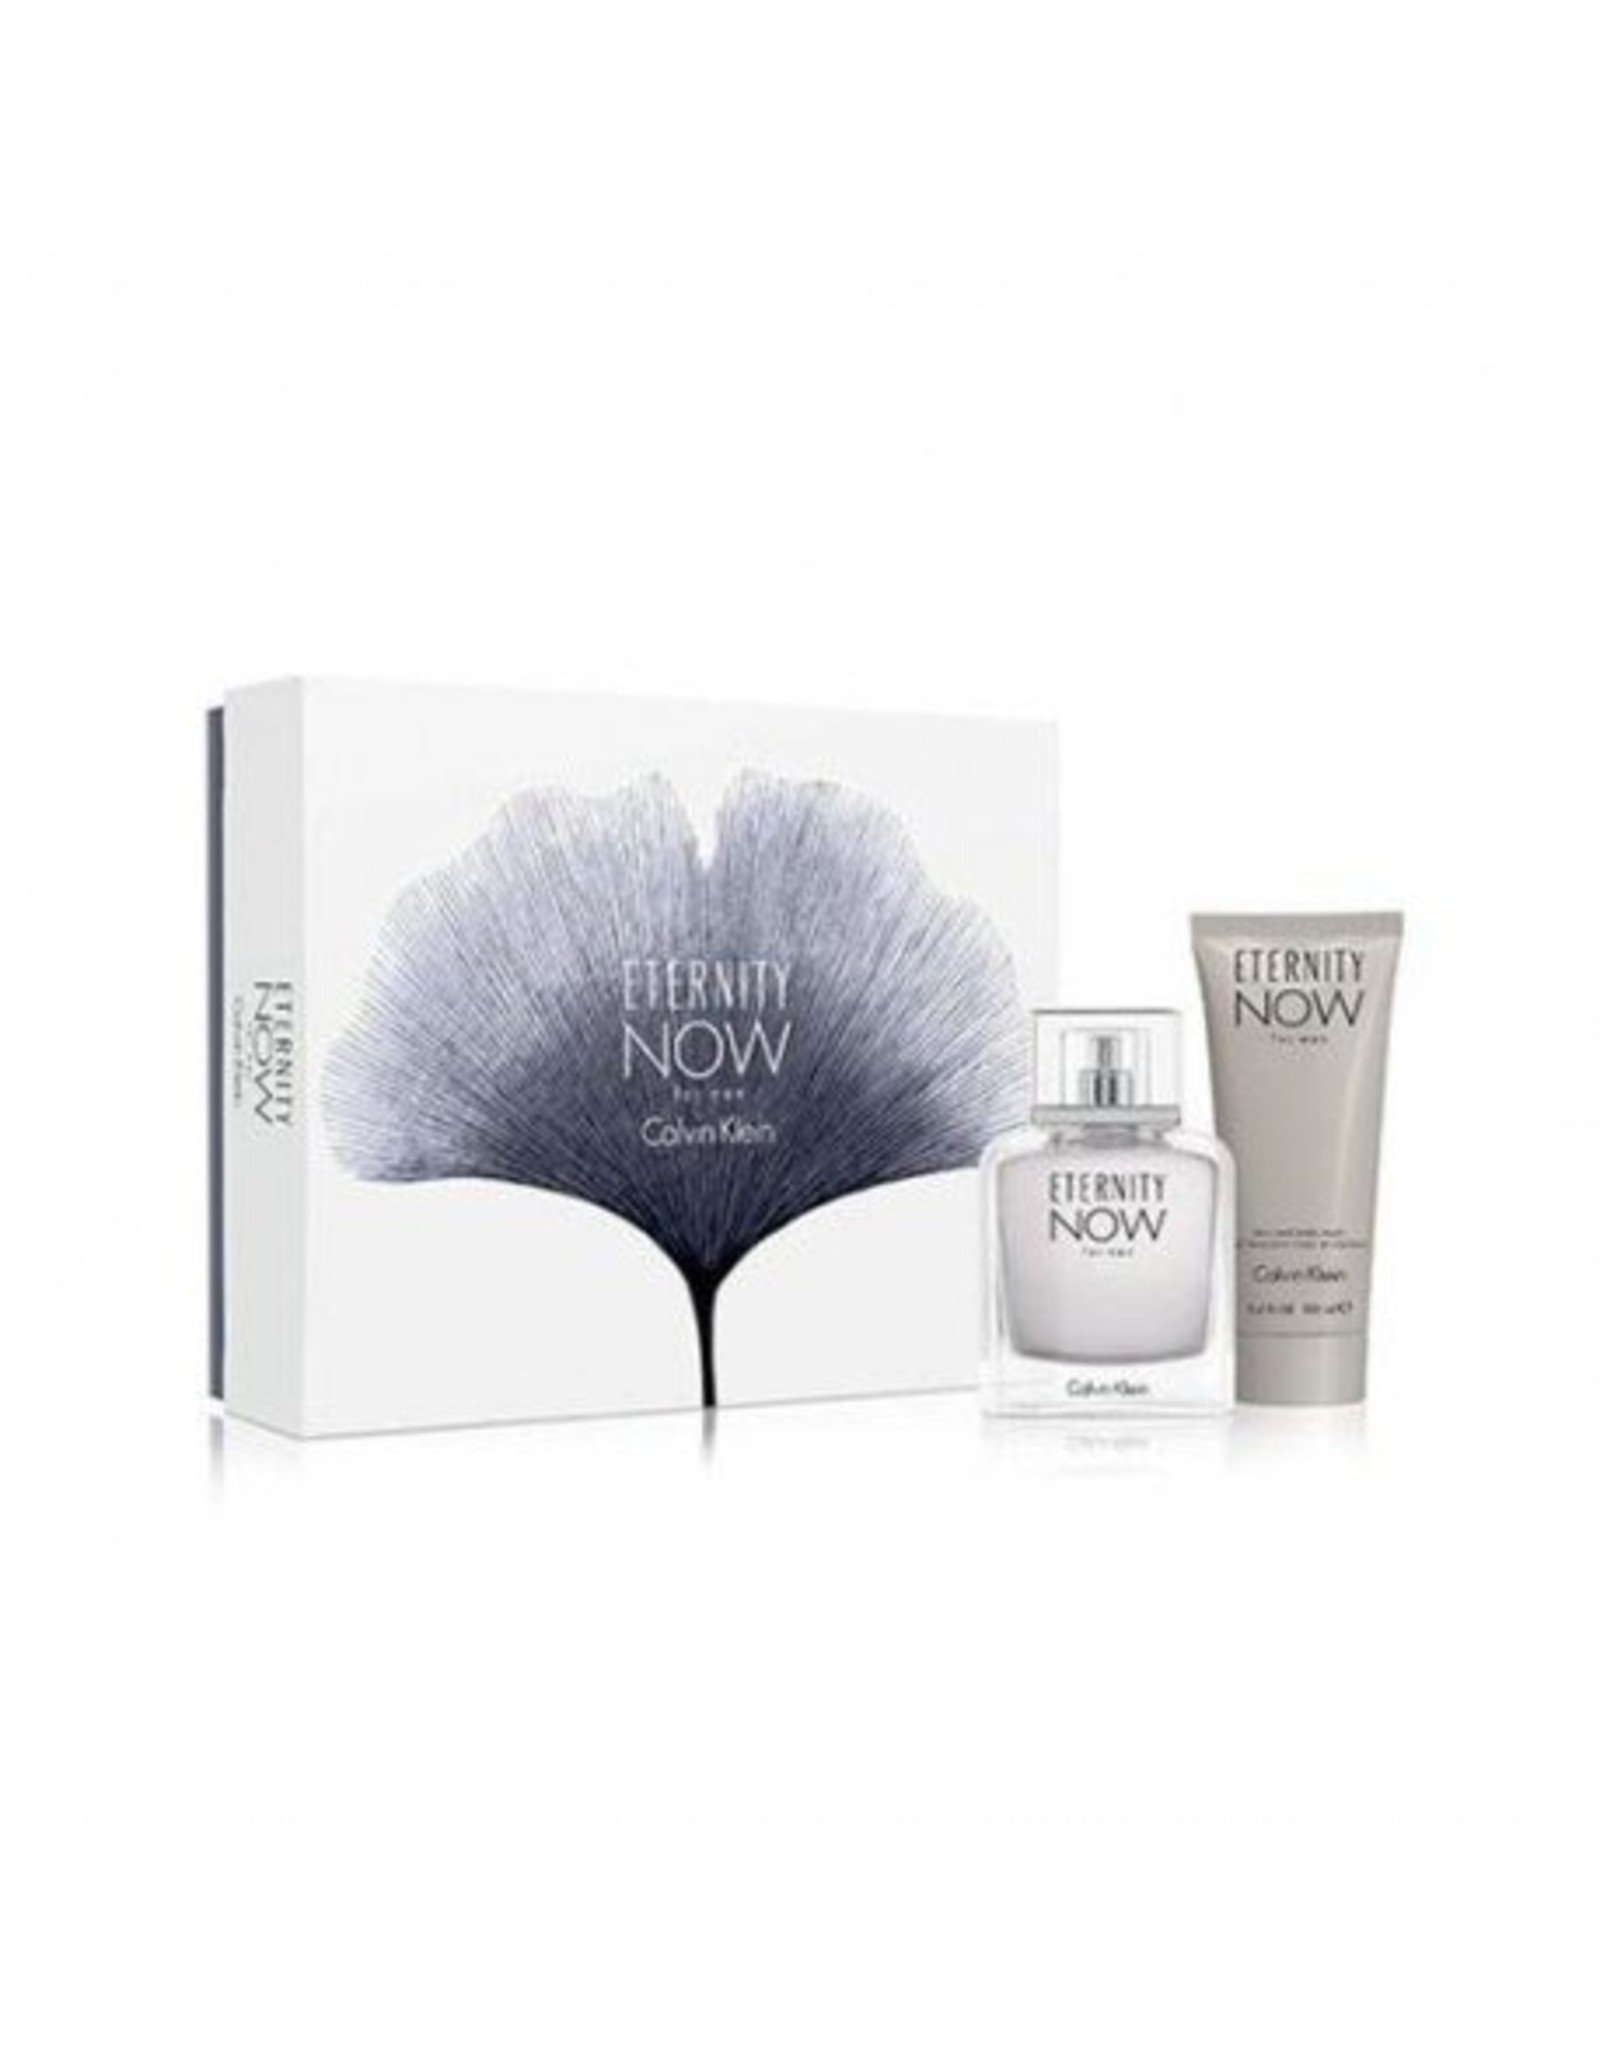 CALVIN KLEIN CALVIN KLEIN ETERNITY NOW 2pcs Set